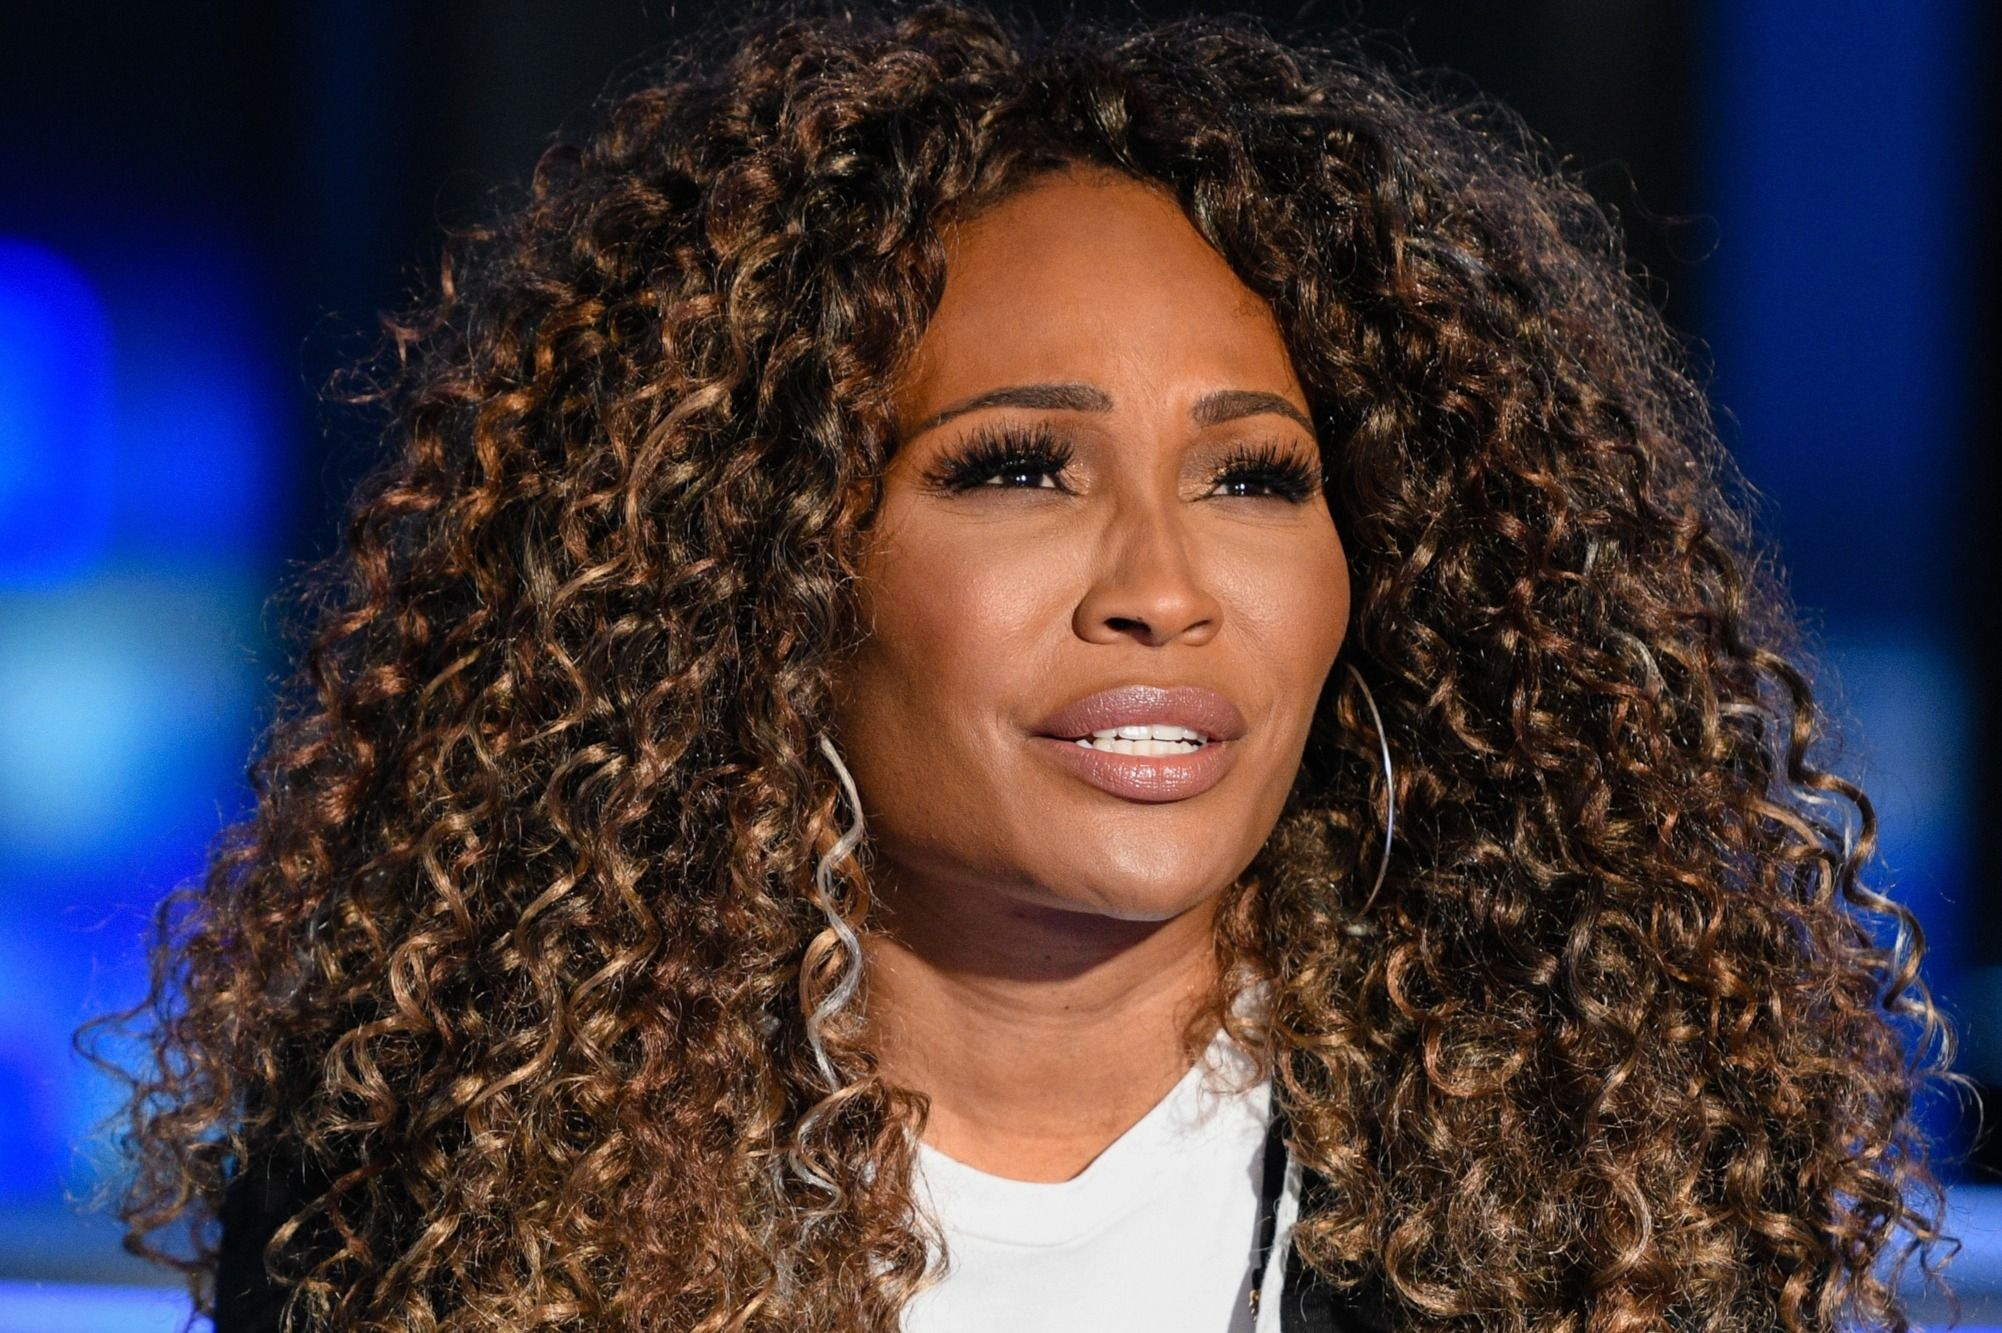 Cynthia Bailey Supports Eva Marcille And Gushes Over Her Look